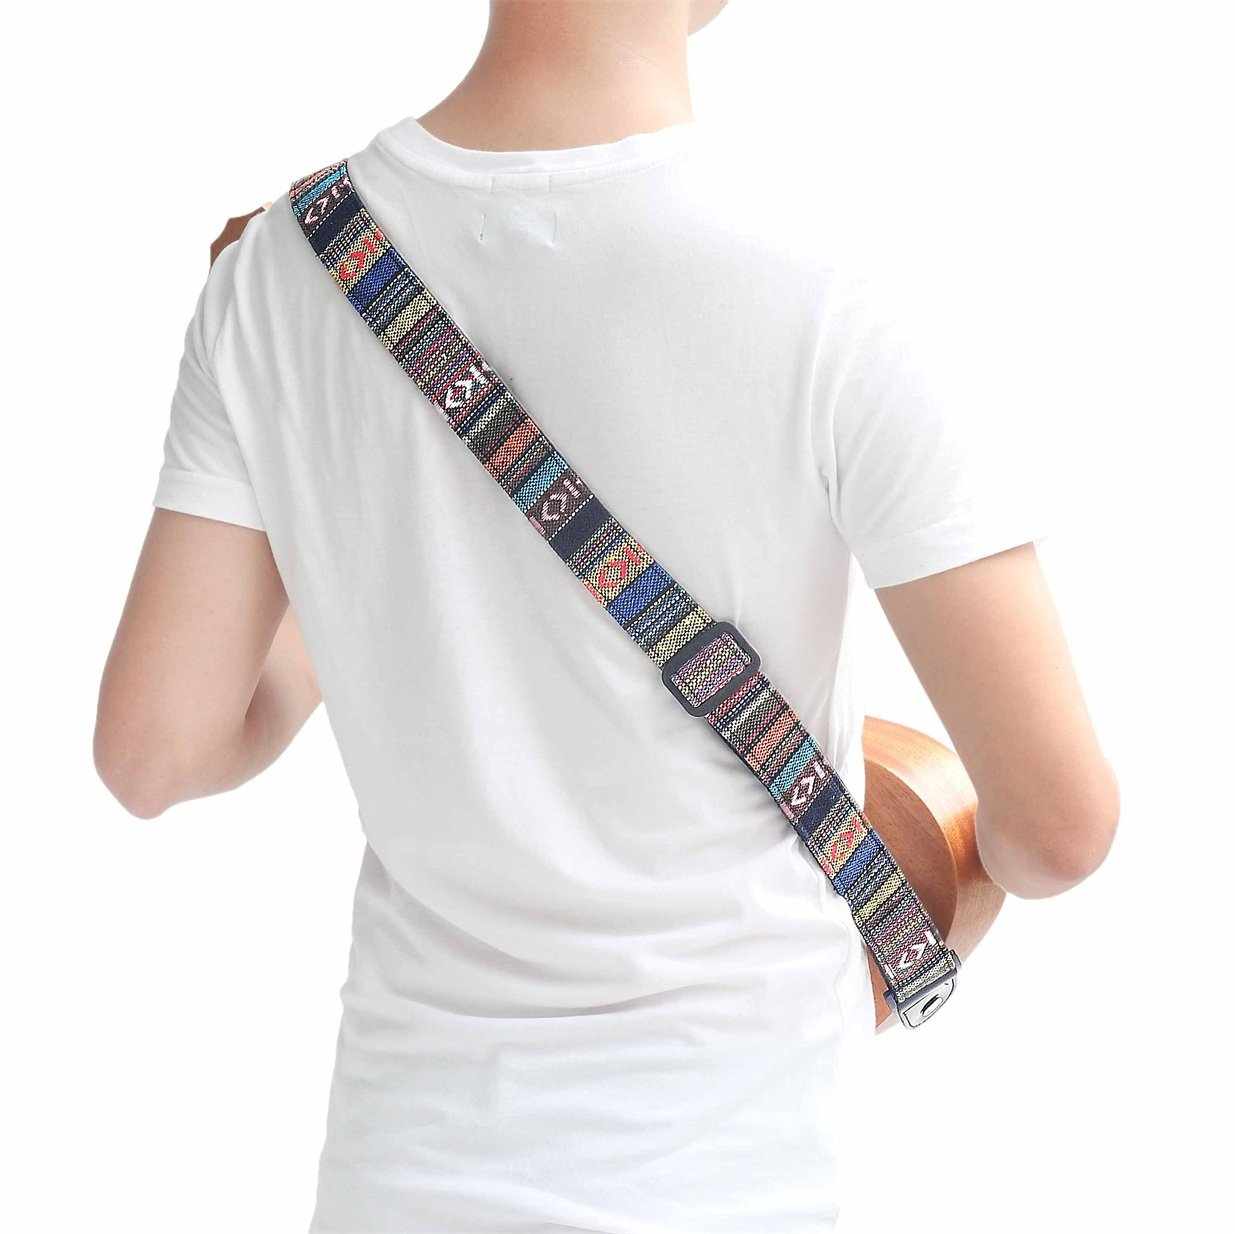 CYC Music UCS-02Hootenanny Style Guitar Straps Retro braided style 100% Cotton & Genuine Leather Adjustable length 3